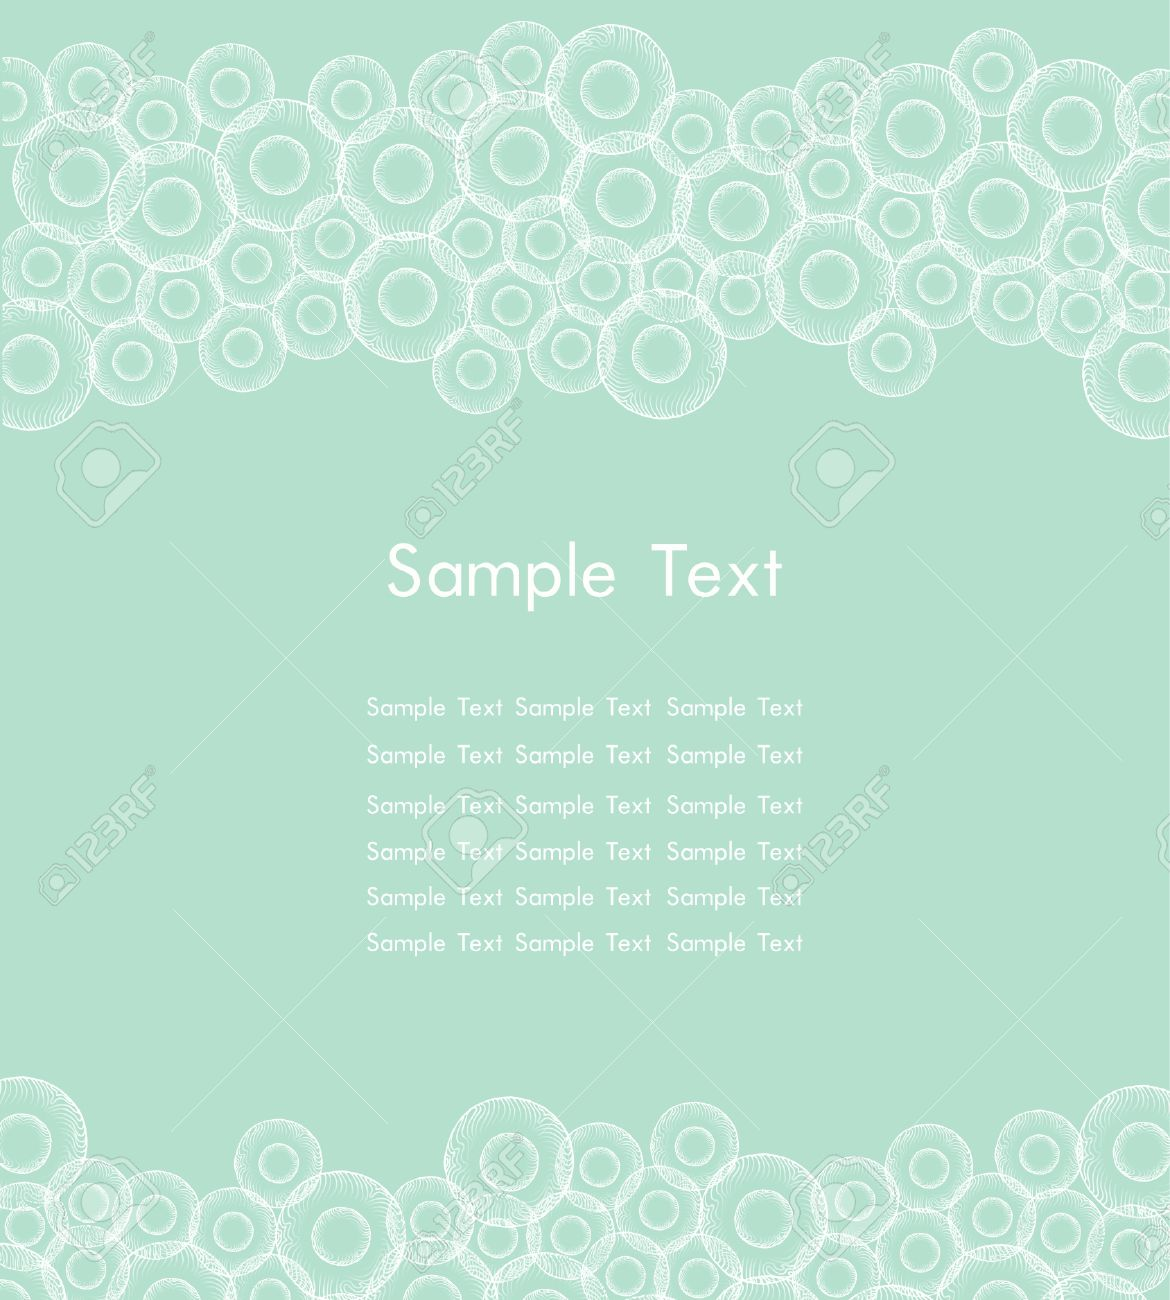 Template for design web page backgrounds, cards, flayers  Text background with colorful circle pattern Stock Vector - 16519030